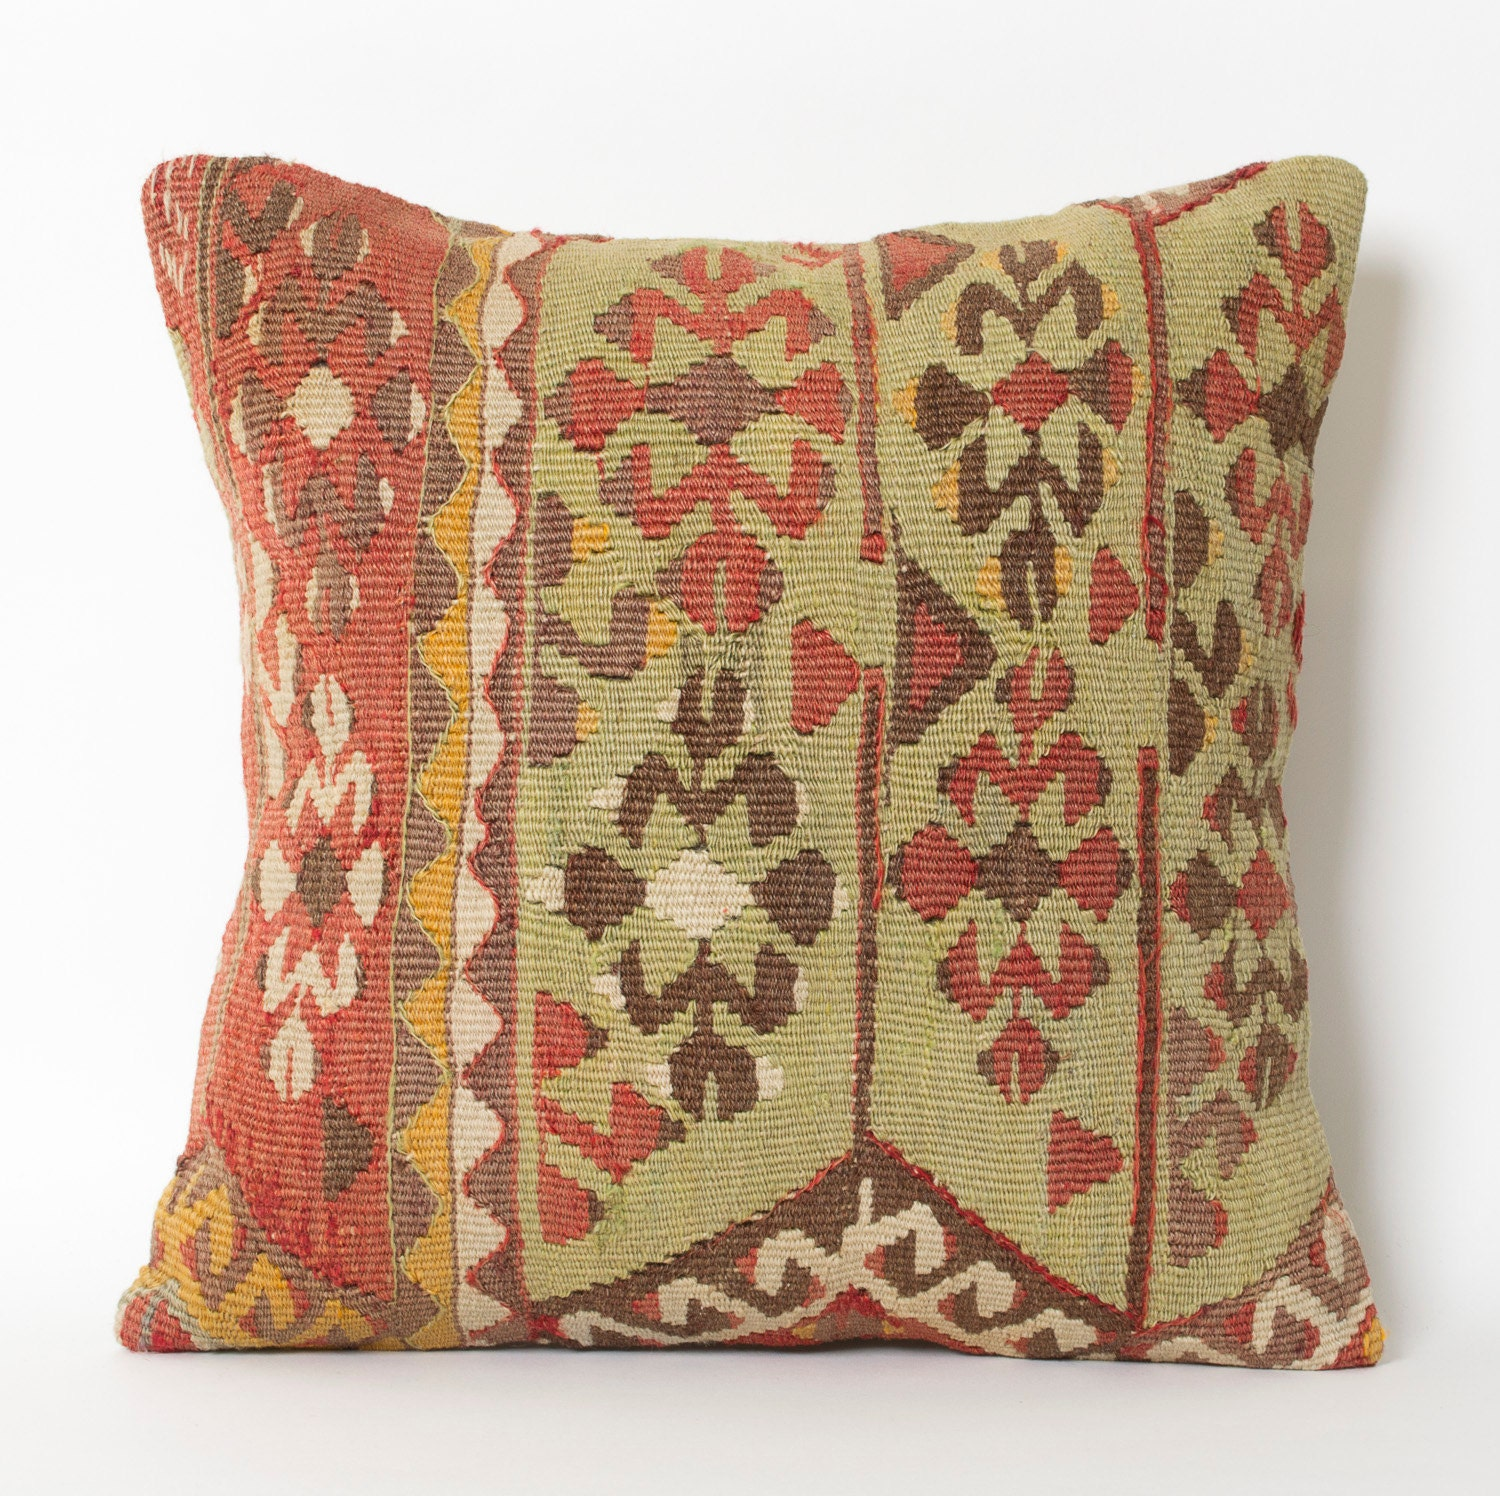 Southwestern Throw Pillows For Couch : Southwestern pillow couch pillows pillow case aztec native